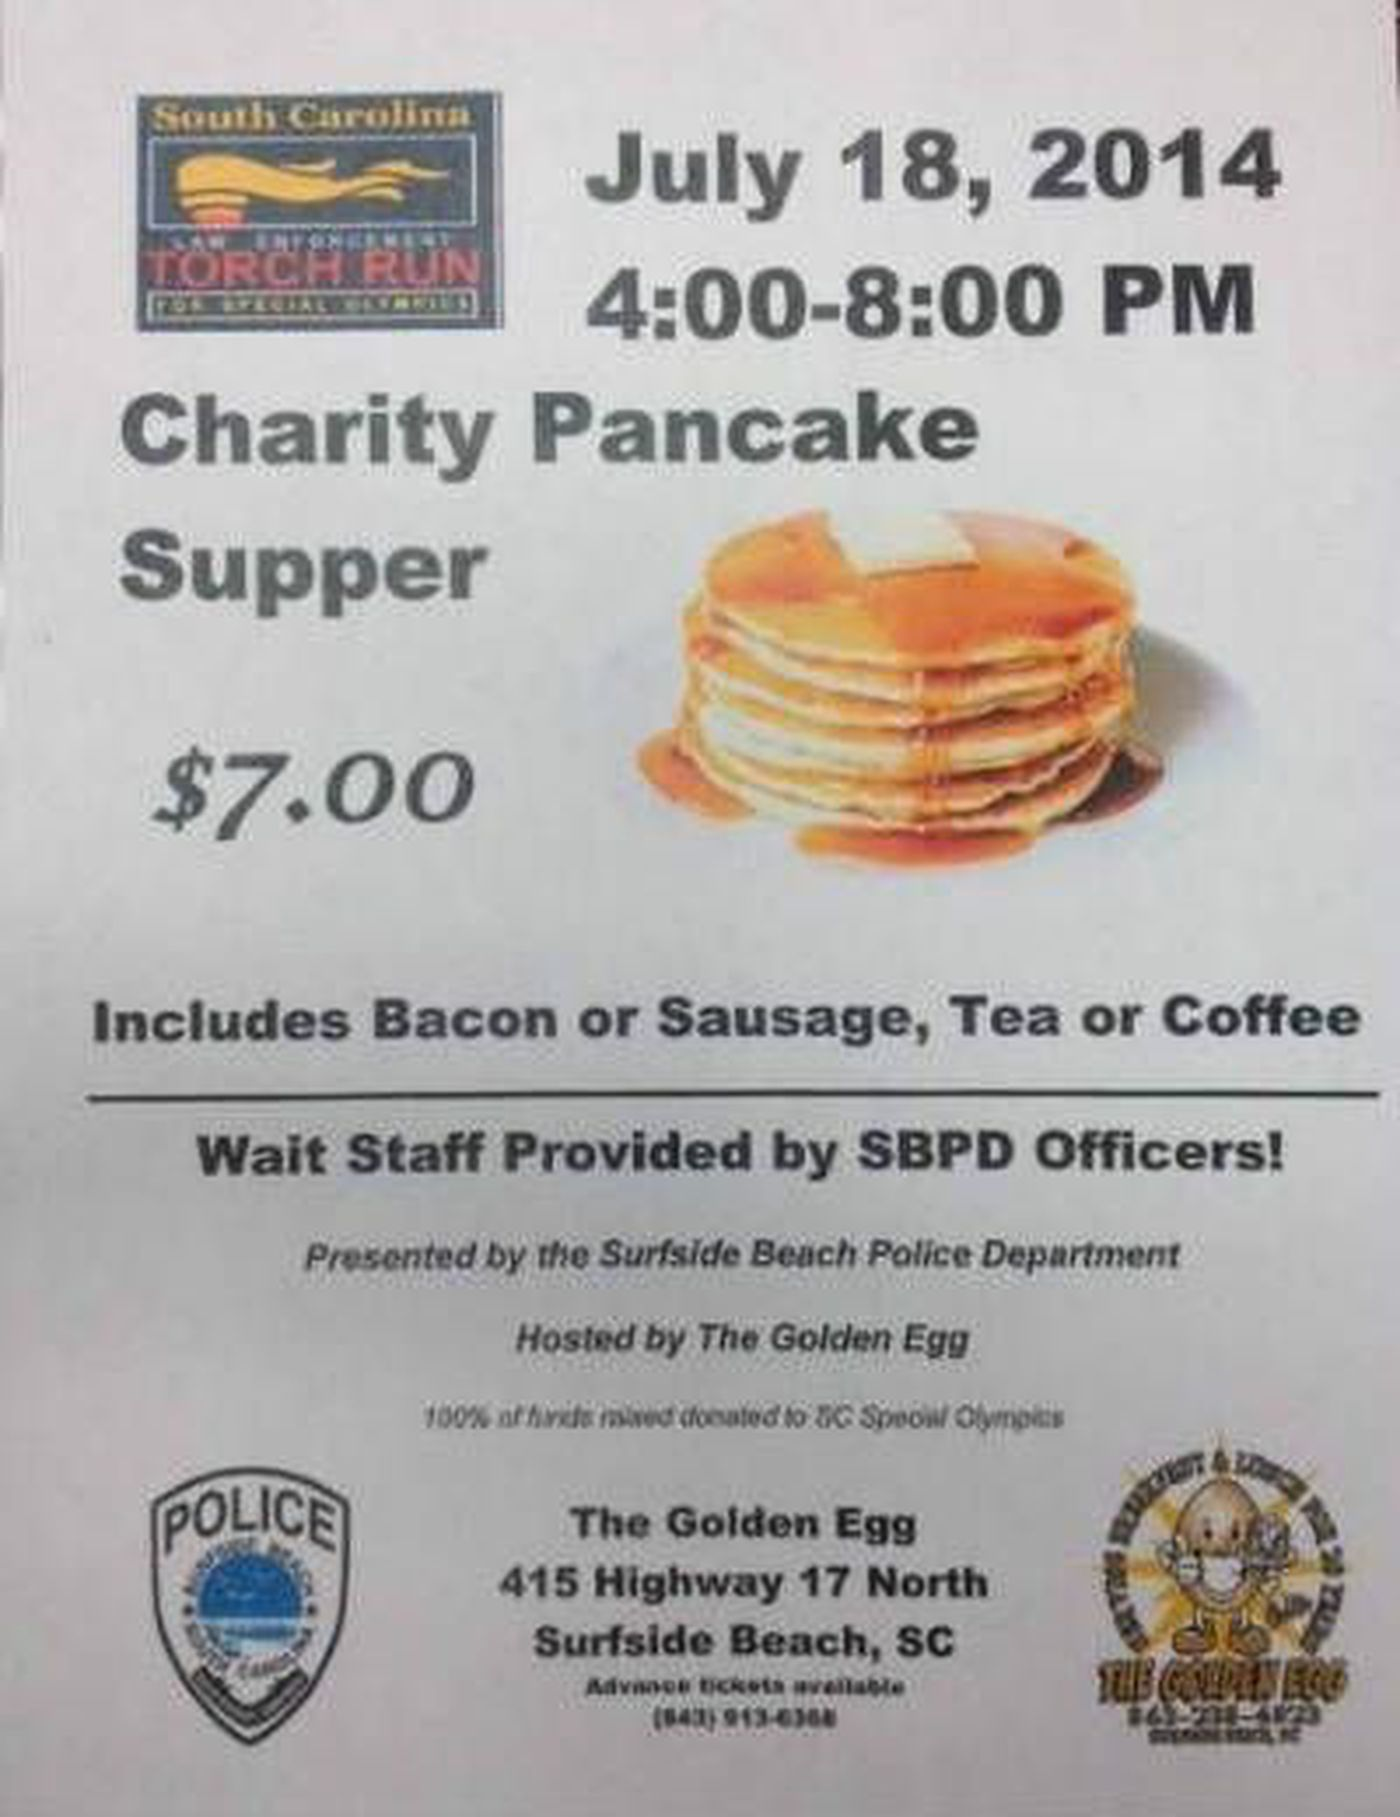 SBPD and Golden Egg host pancake supper for Special Olympics